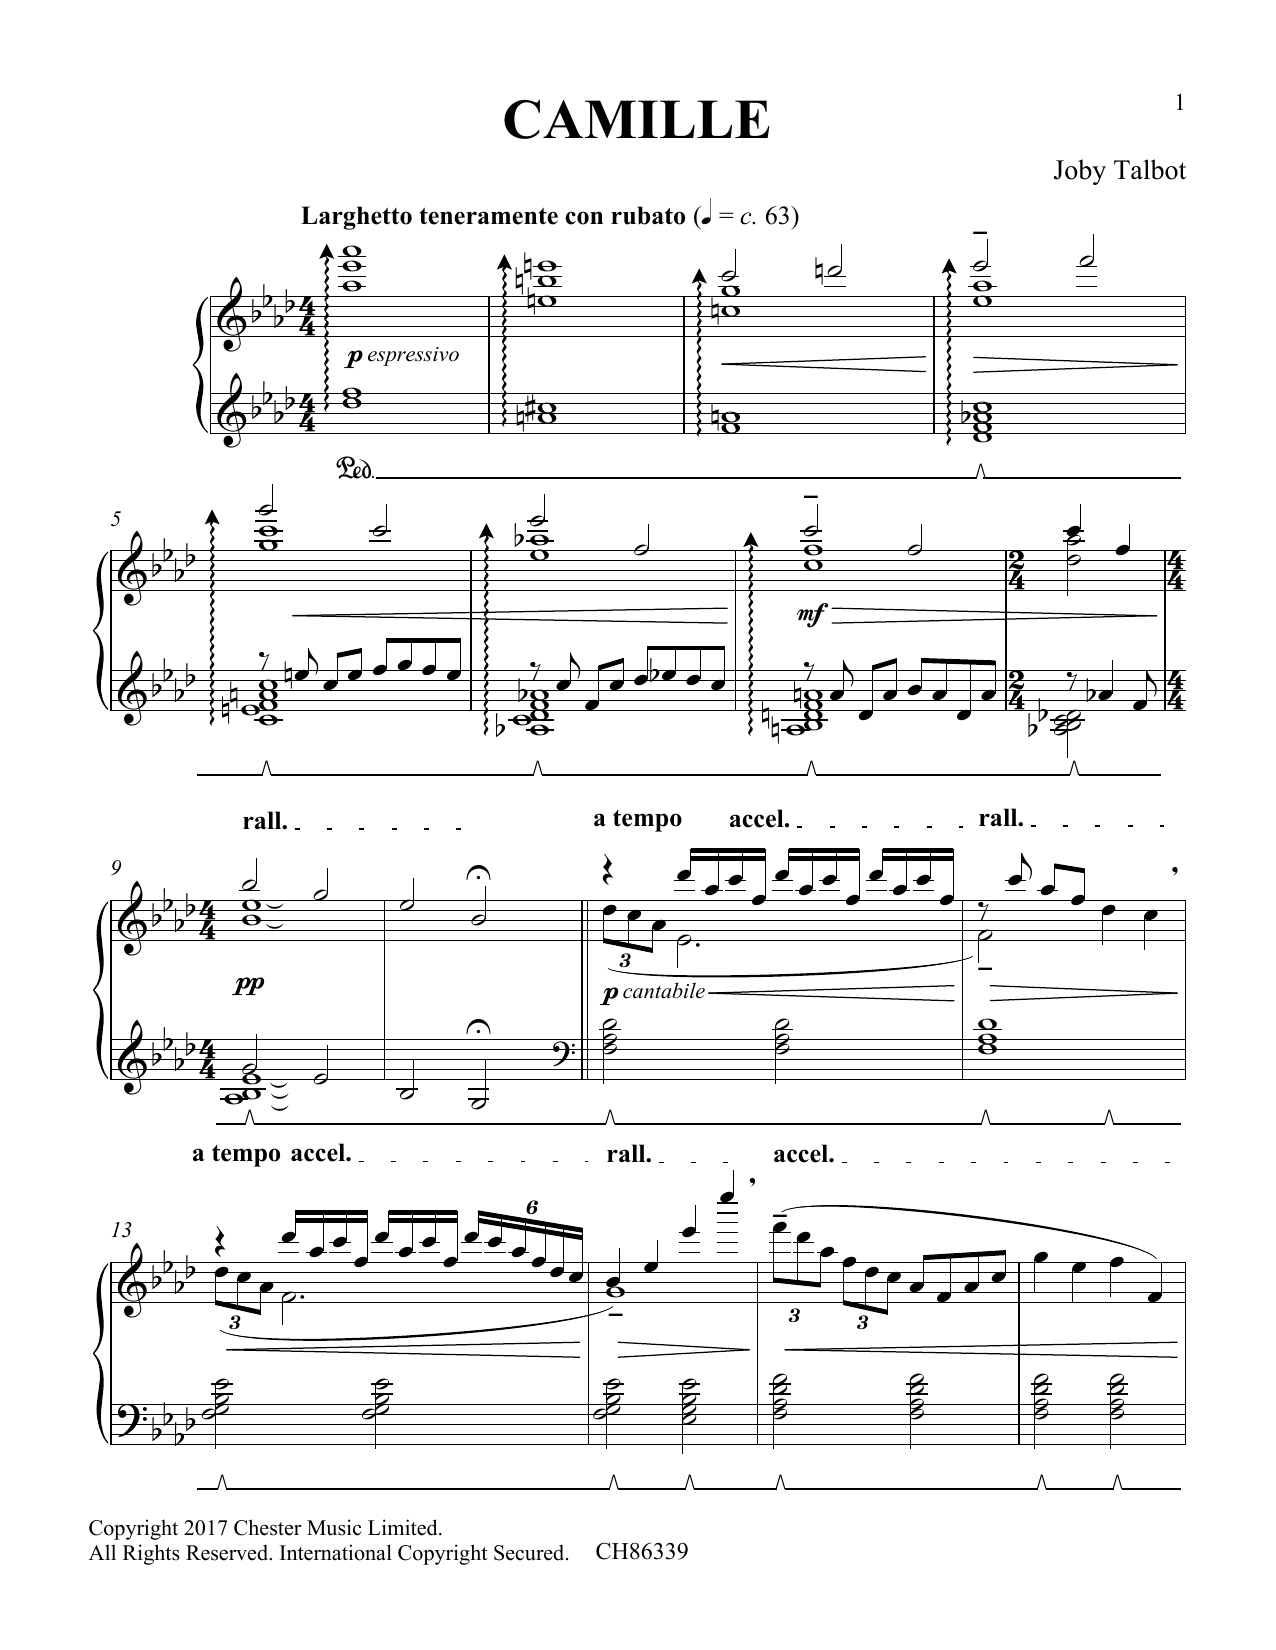 Joby Talbot Camille sheet music notes and chords